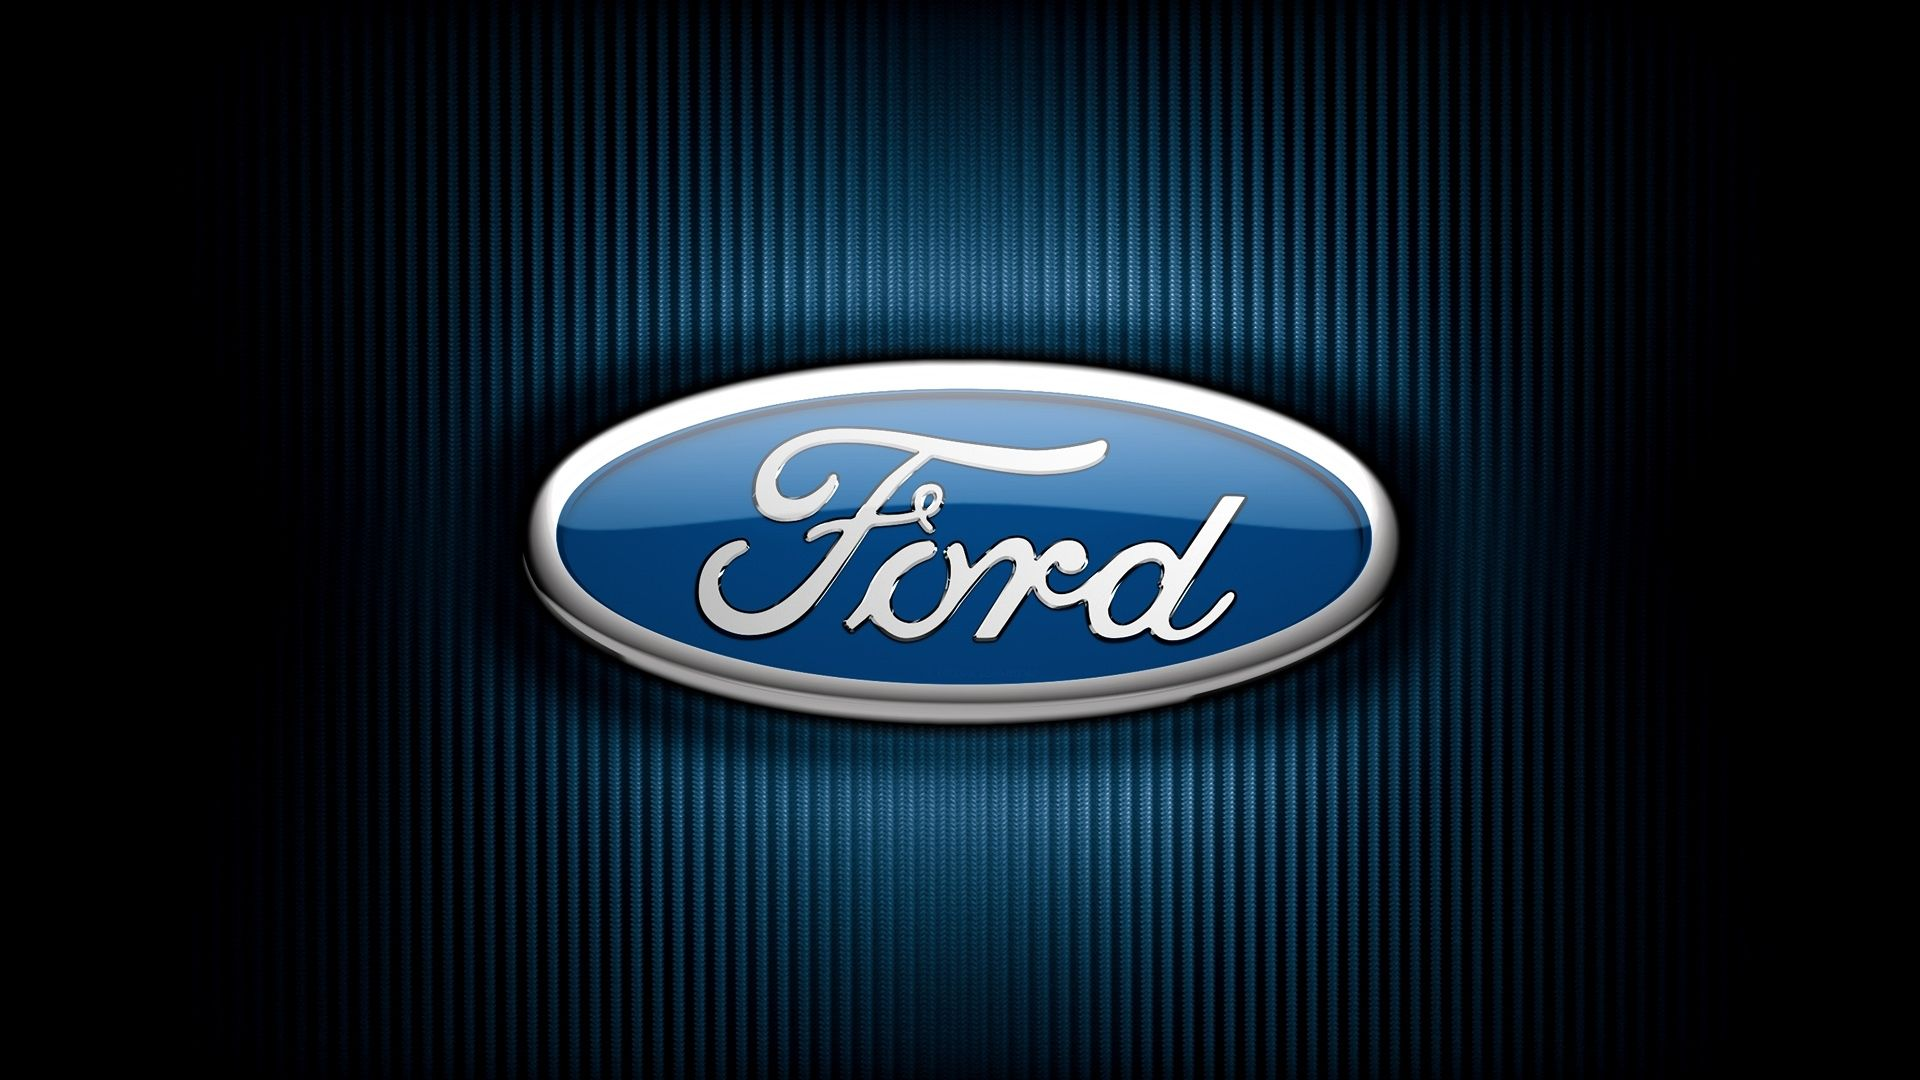 Ford Logo Wallpaper 1920 X 1080 Ford Motor Company Ford Carros